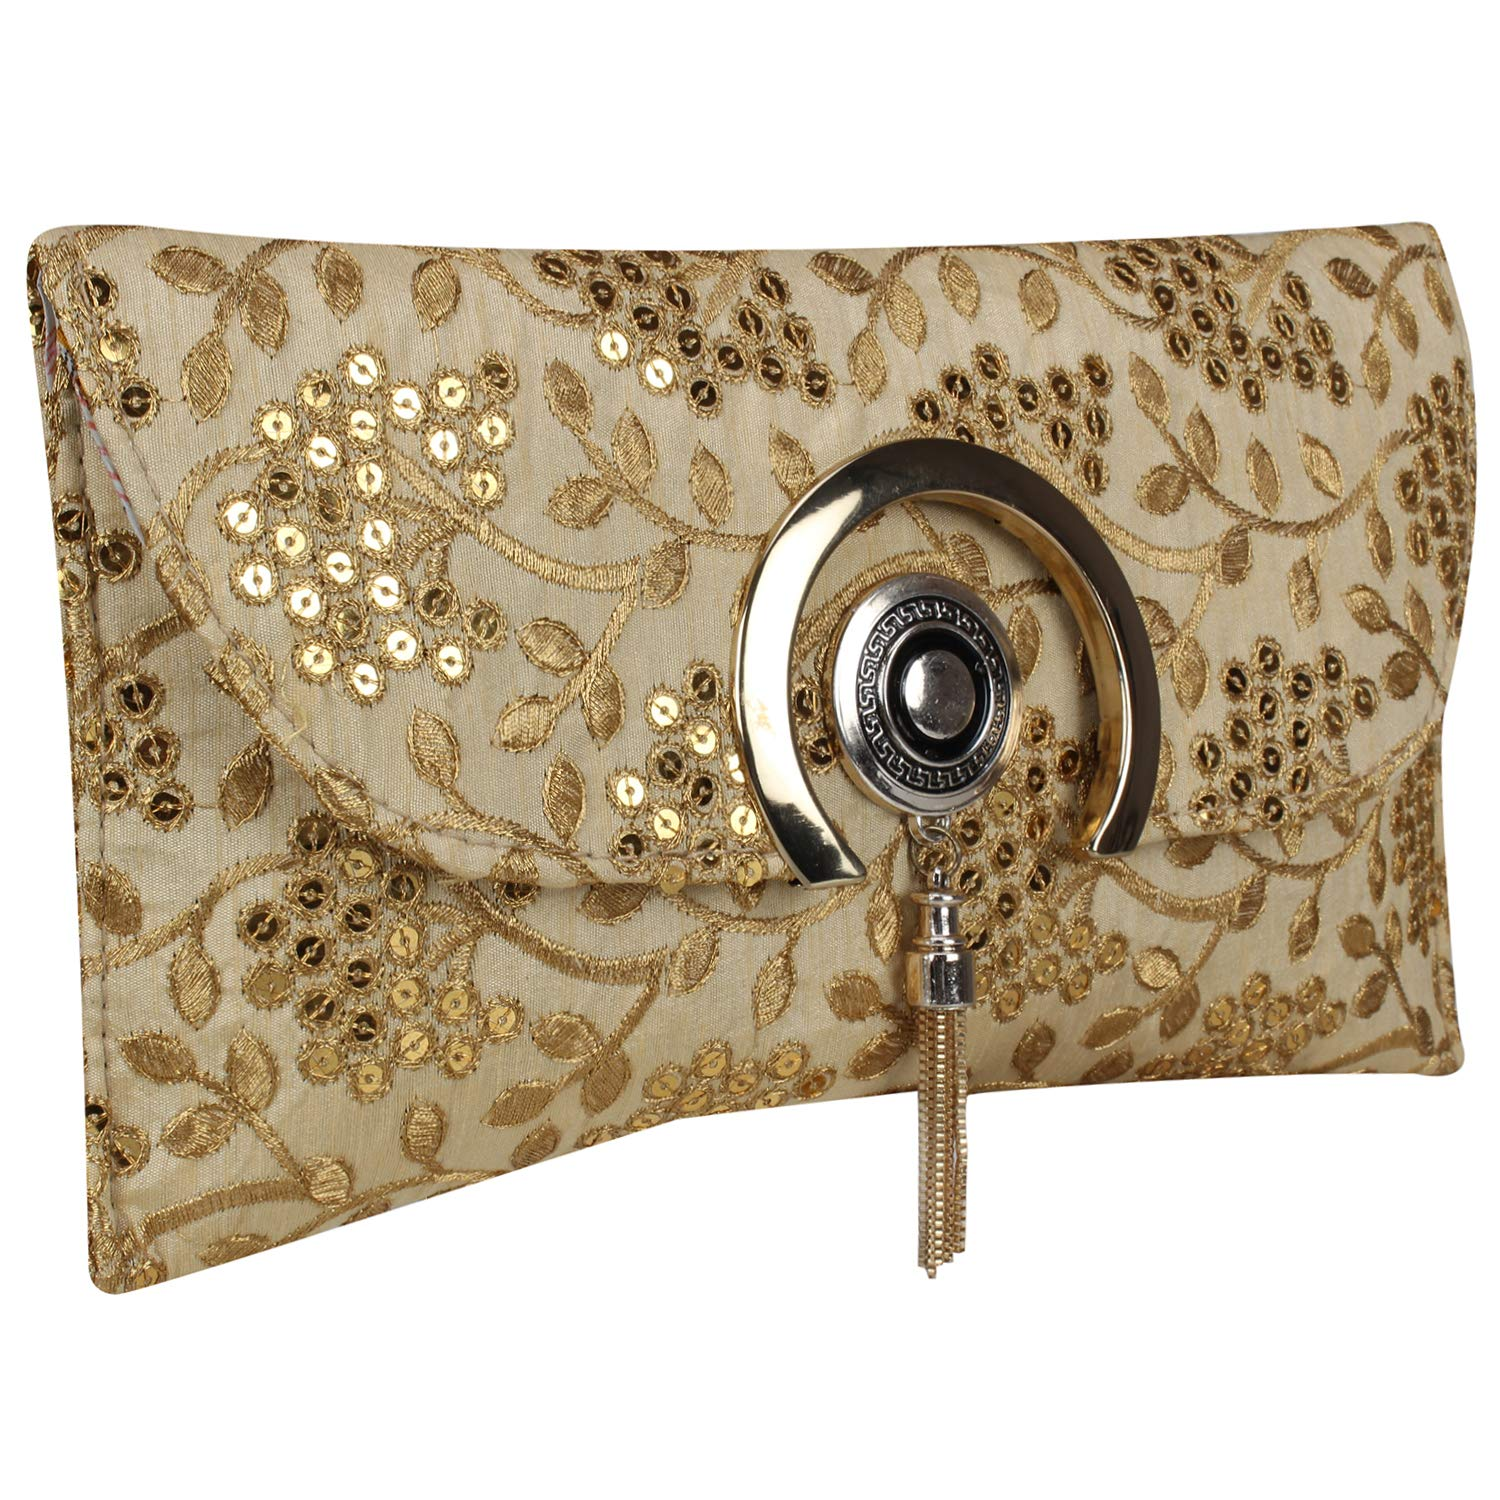 Indian Attractive Hand Bag/Clutch/ Strap